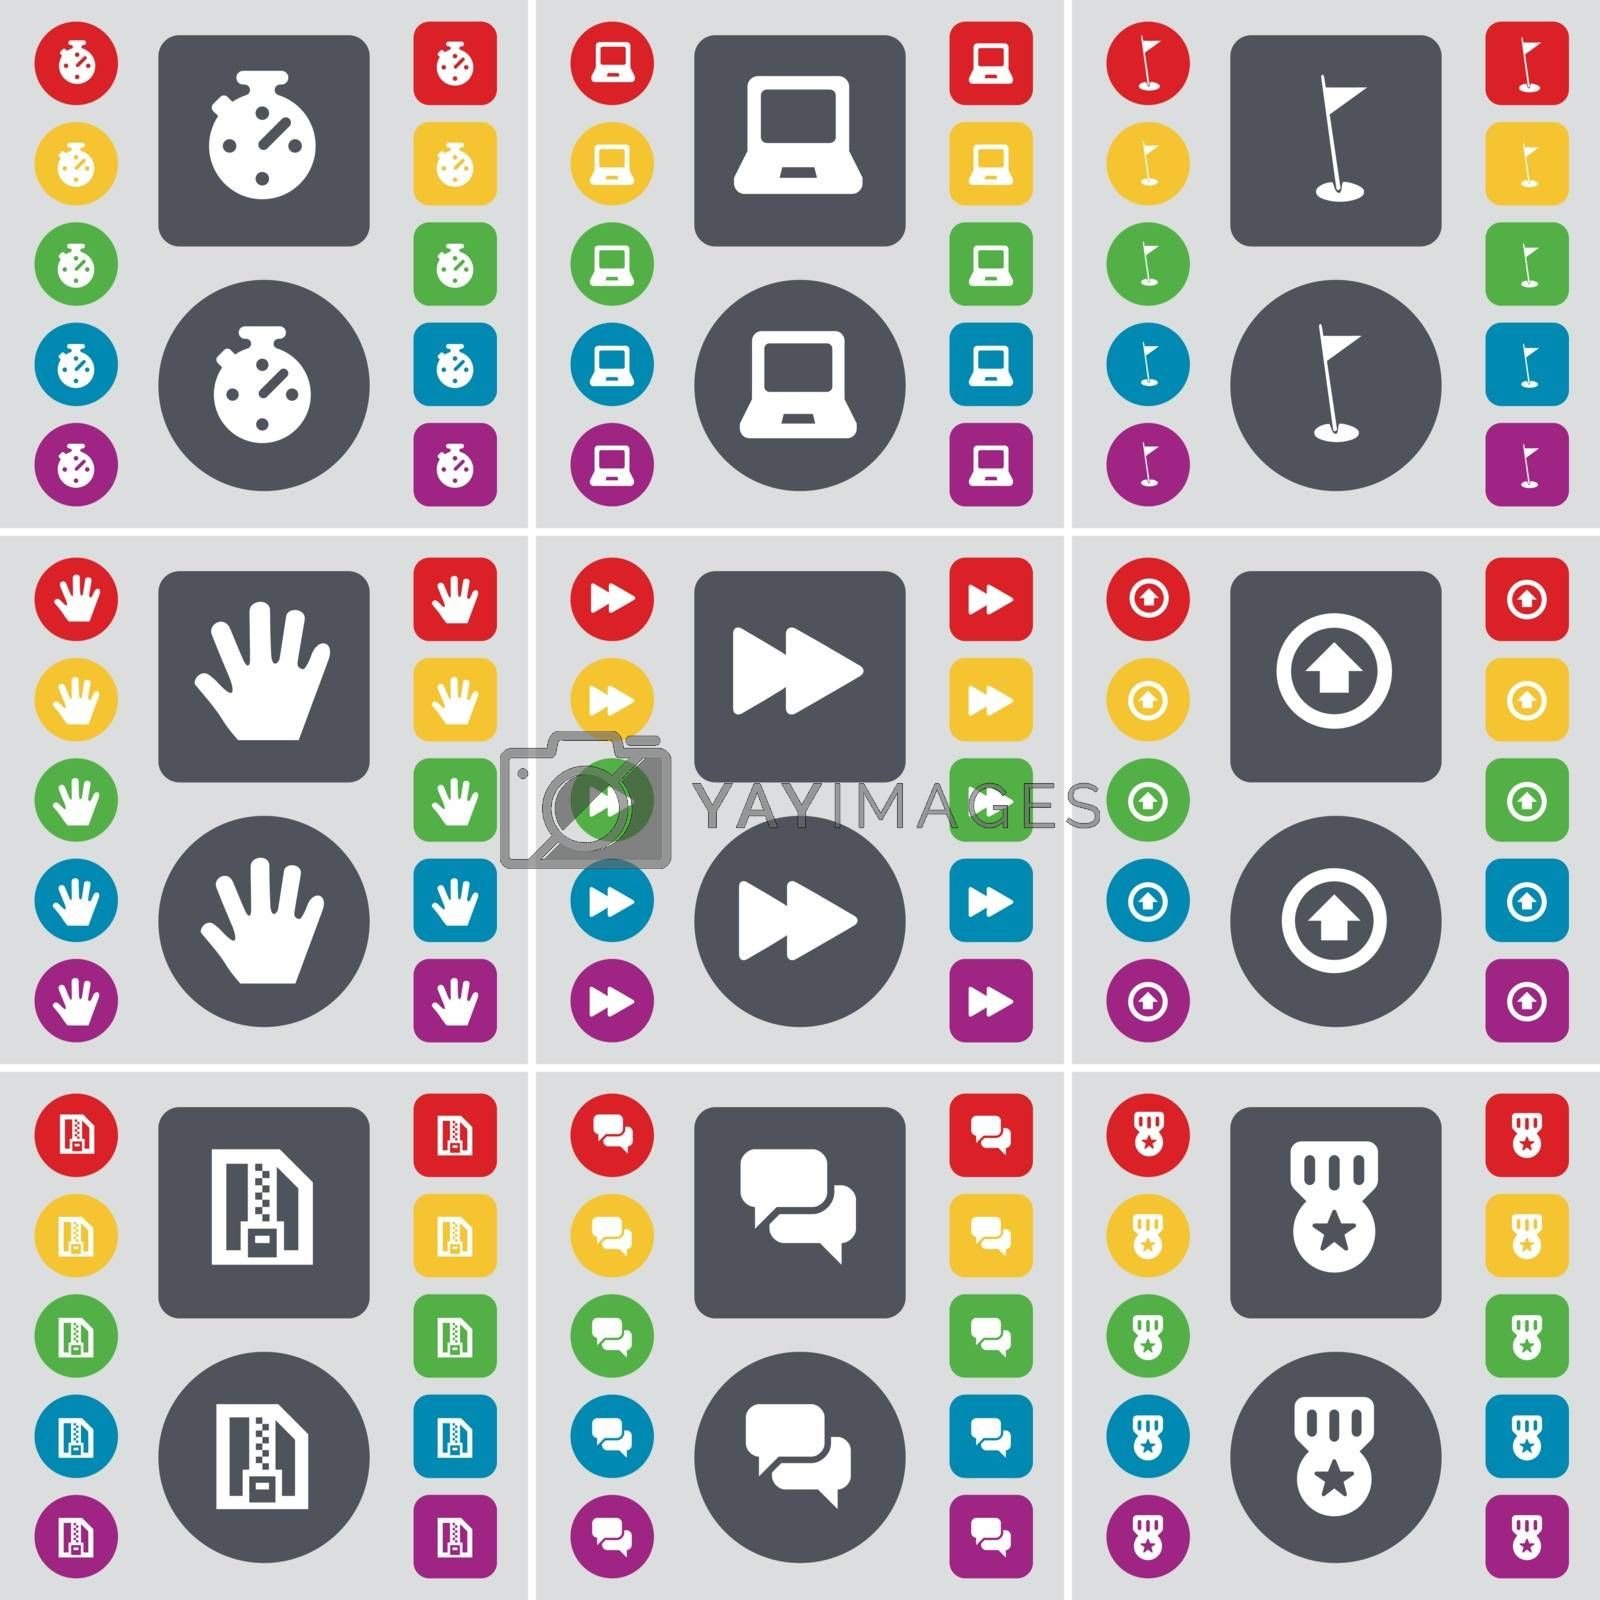 Royalty free image of Stop, Laptop, Golf hole, Hand, Rewind, Arrow up, ZIP file, Chat, Medal icon symbol. A large set of flat, colored buttons for your design. Vector by serhii_lohvyniuk